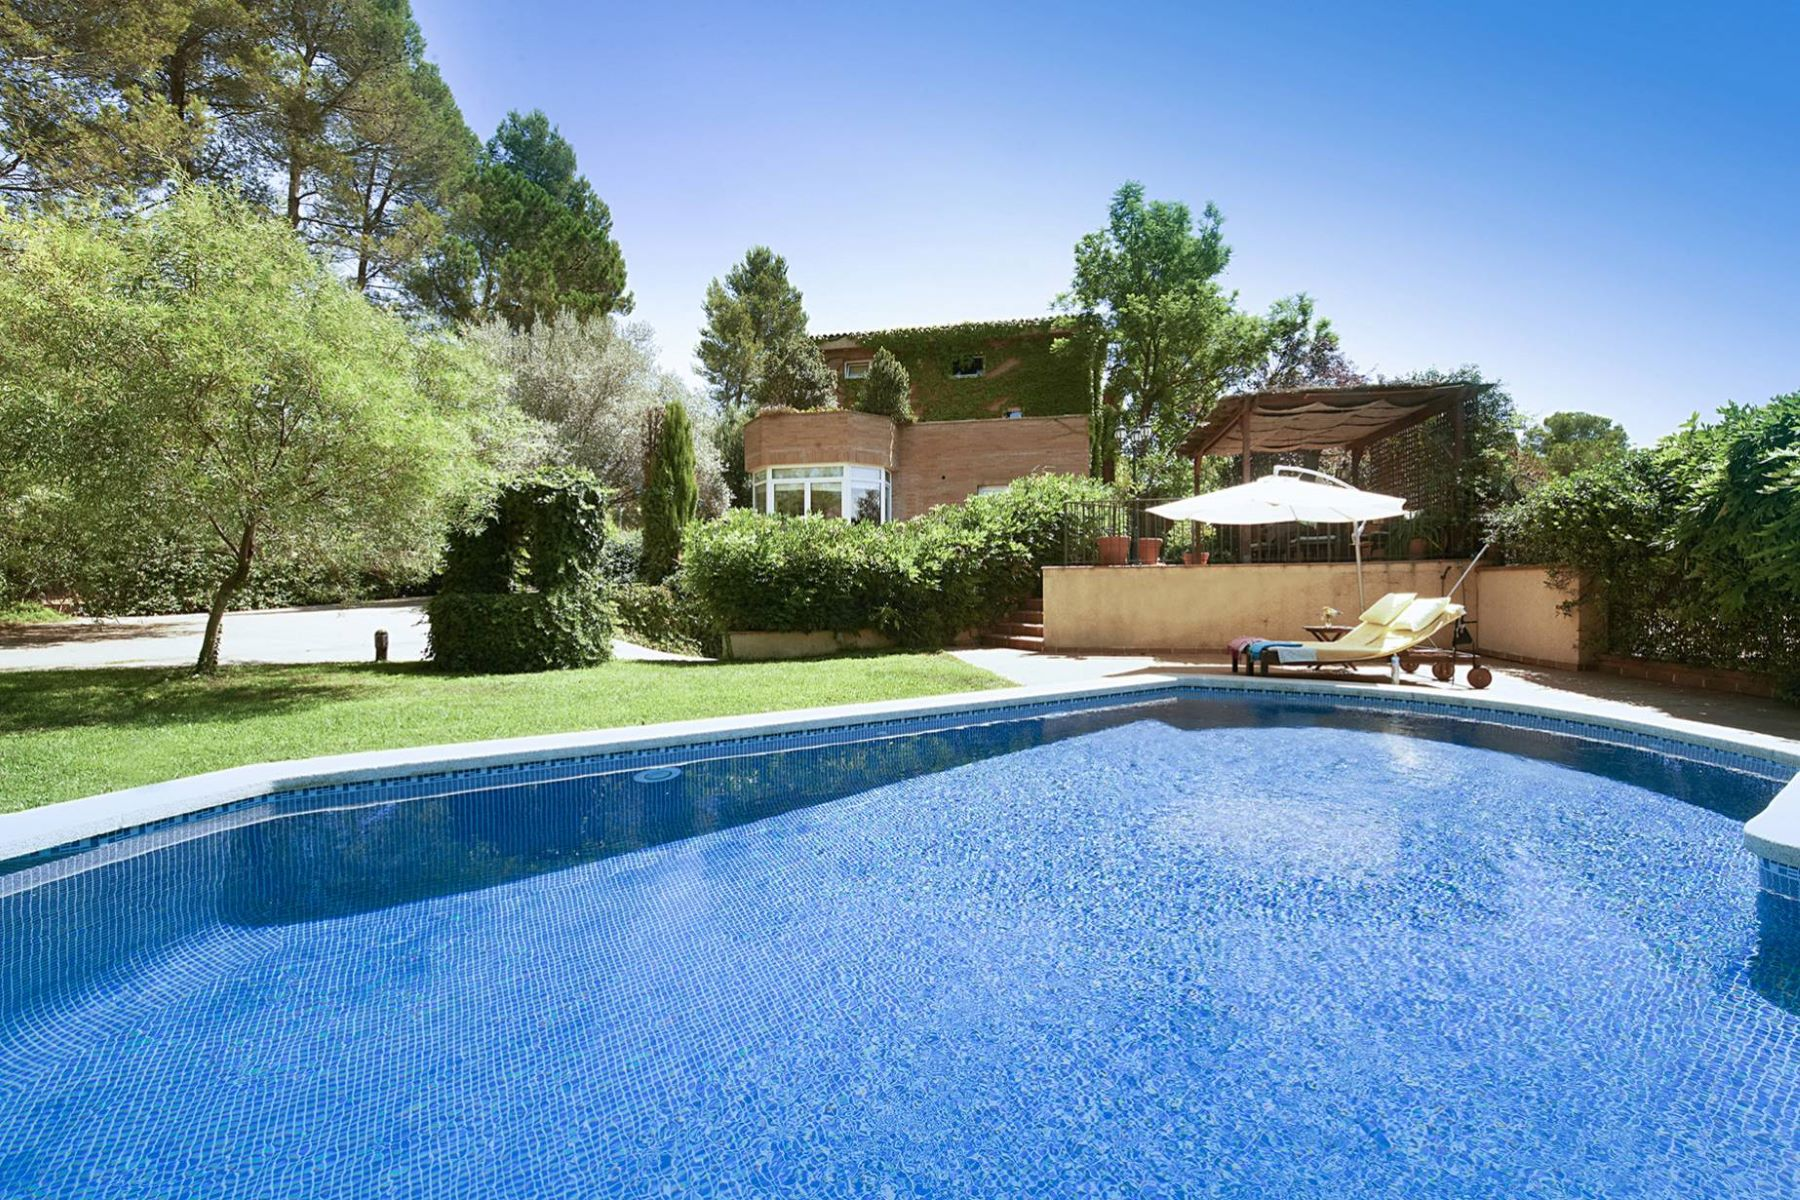 Single Family Home for Sale at Impressive Villa in Sant Cugat del Vallès Sant Cugat Del Valles, Barcelona, 08172 Spain